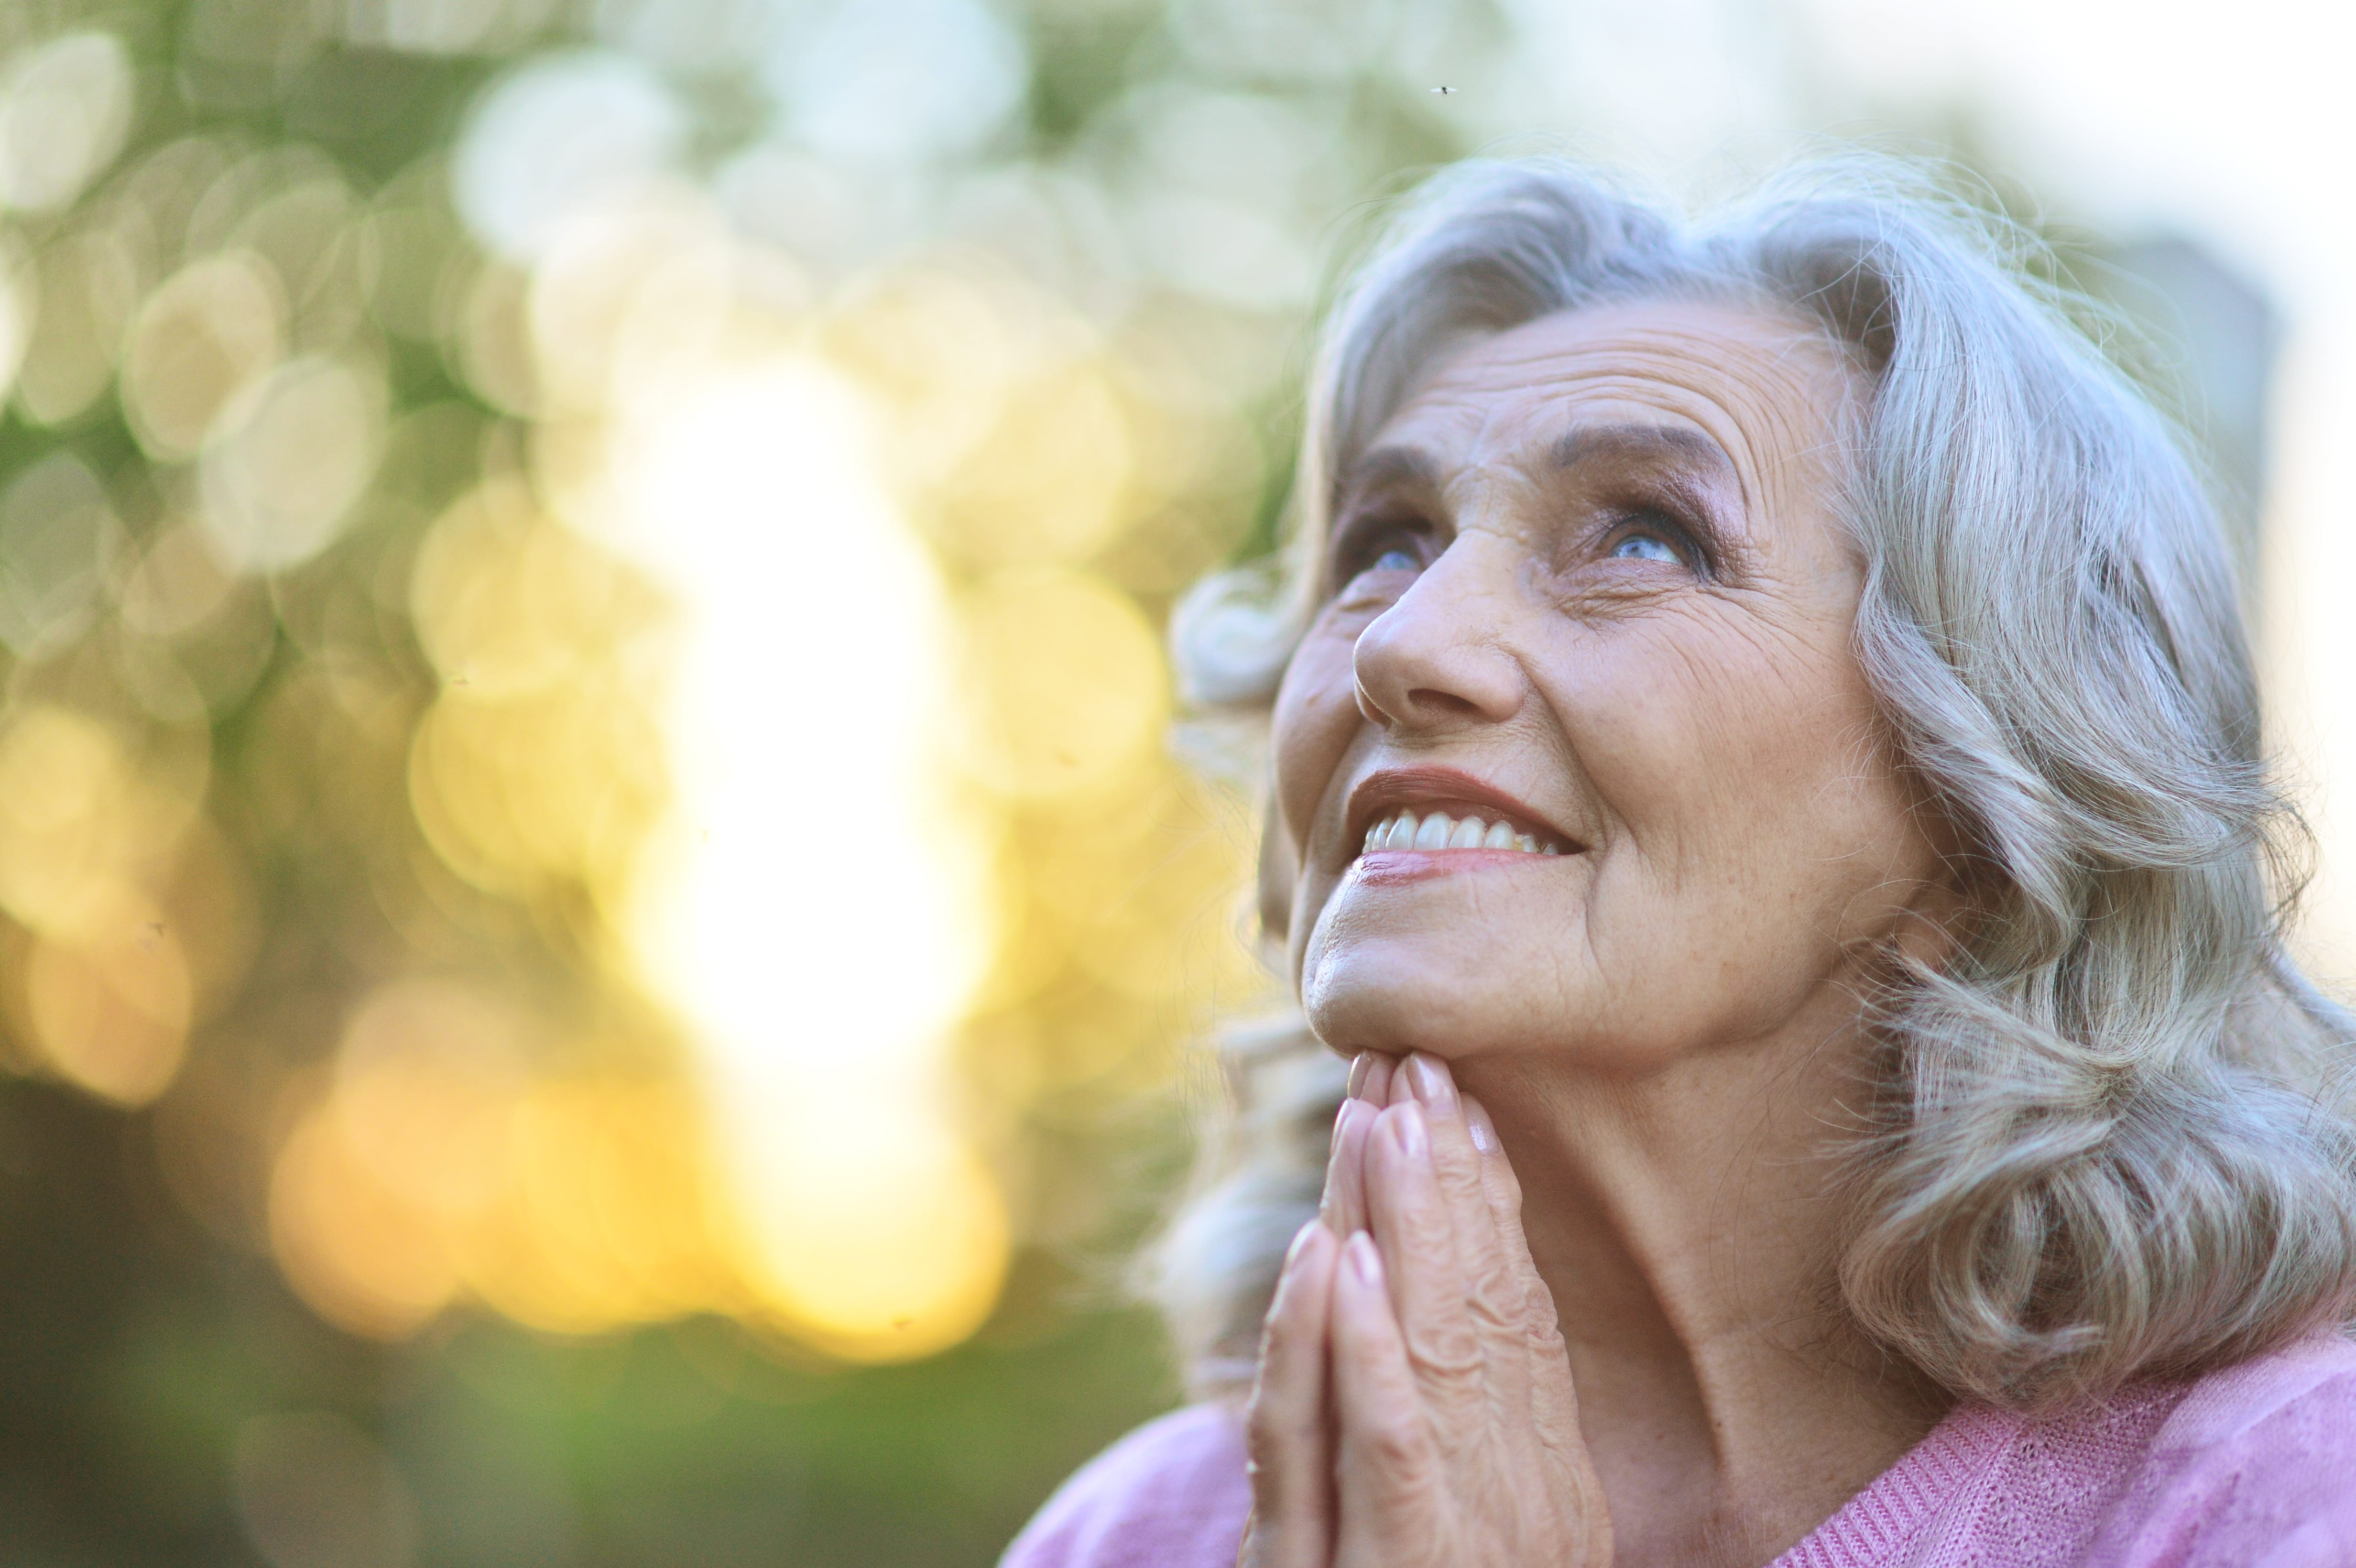 Finding God in Creation This Summer: Tips for Seniors